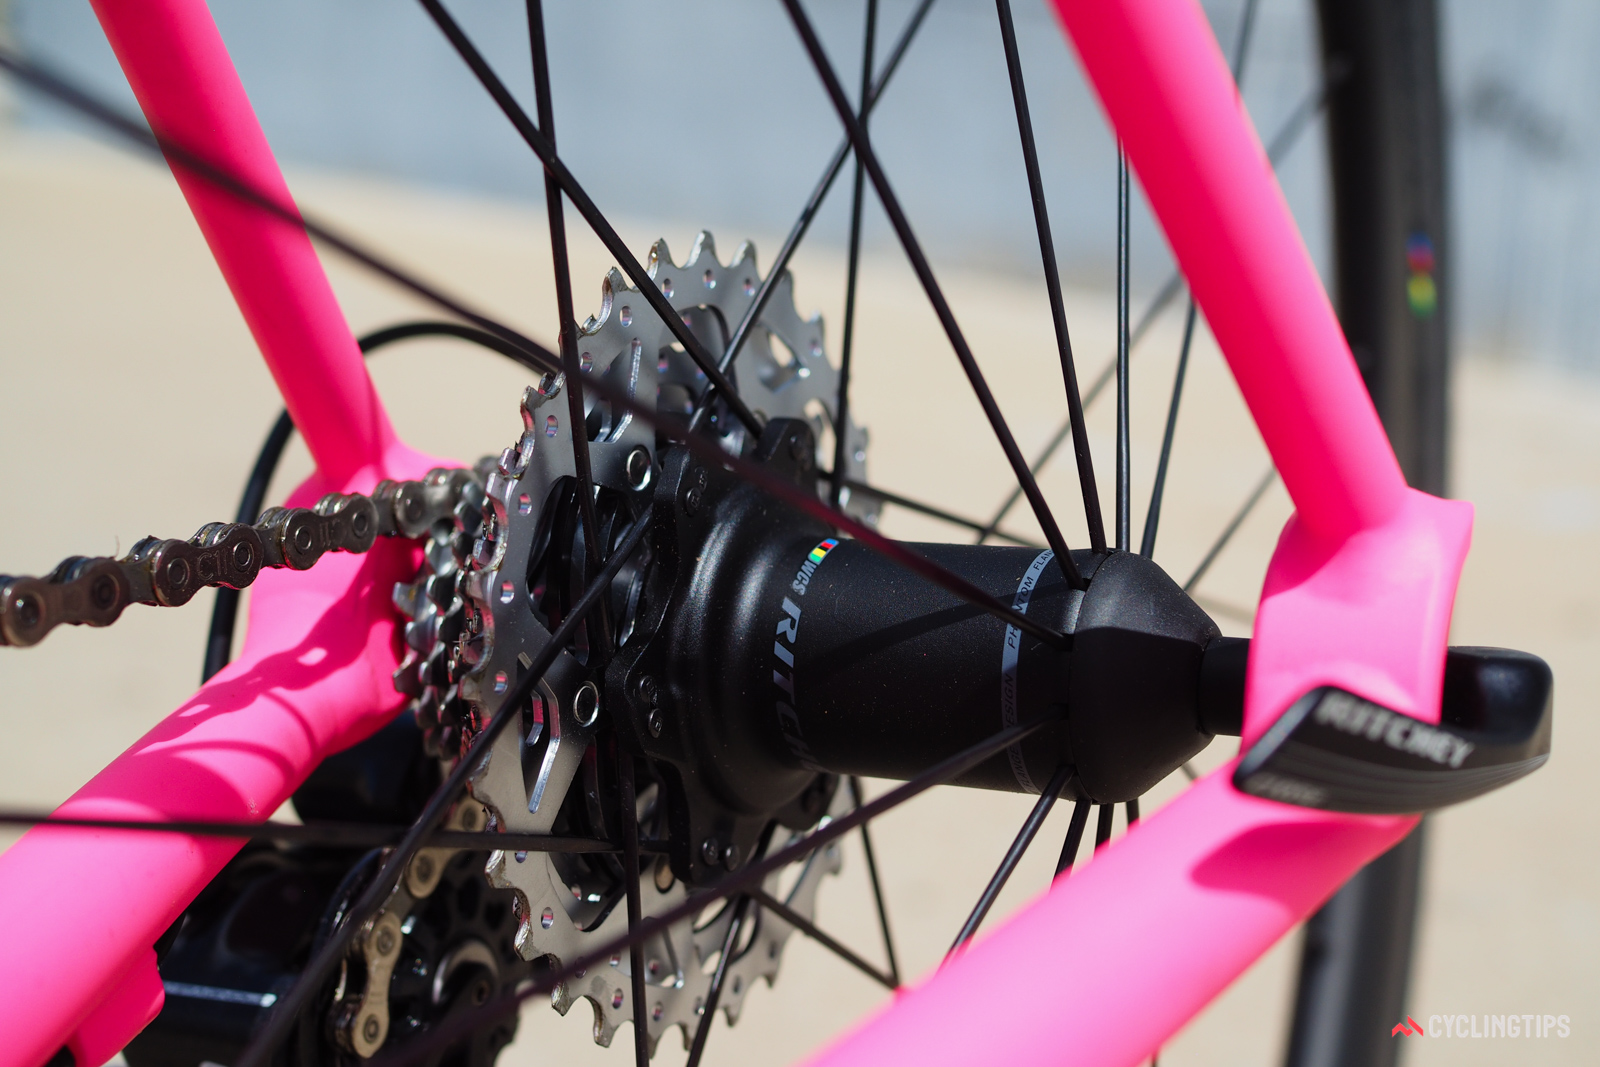 The rear hub looks like it uses a one-piece shell but it's actually made up of two separate forgings.